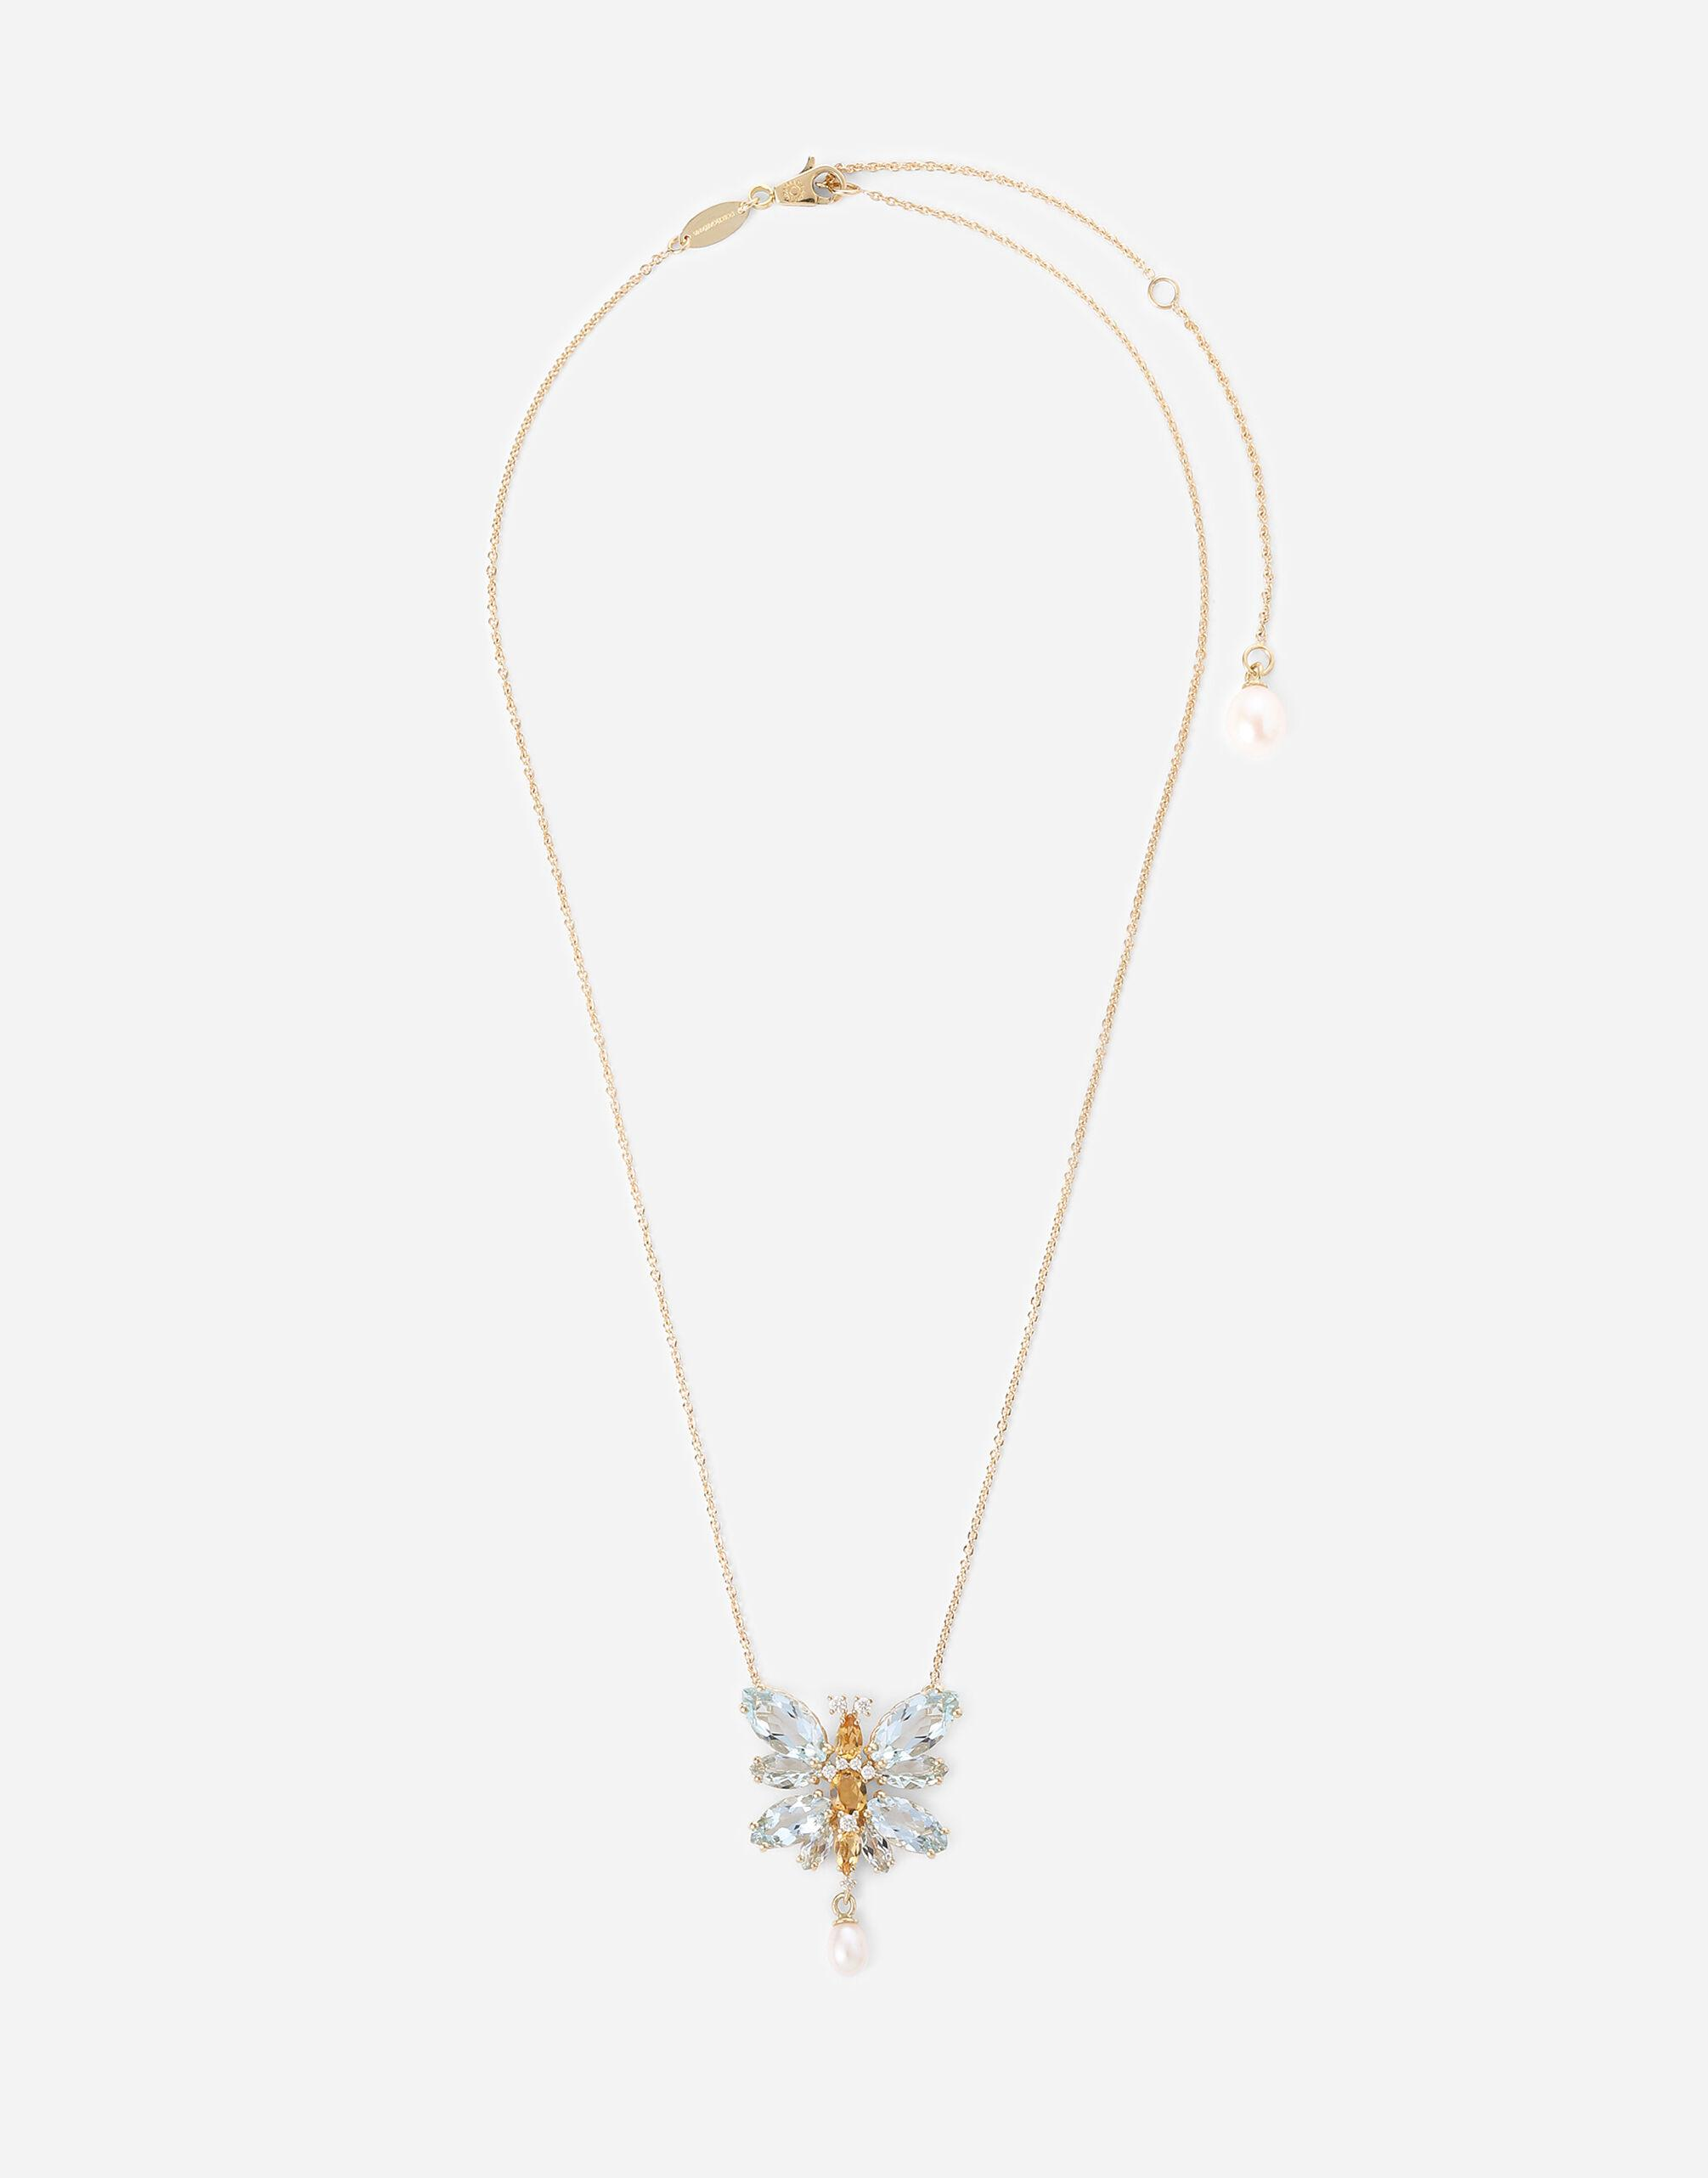 Spring necklace in yellow 18kt gold with aquamarine butterfly